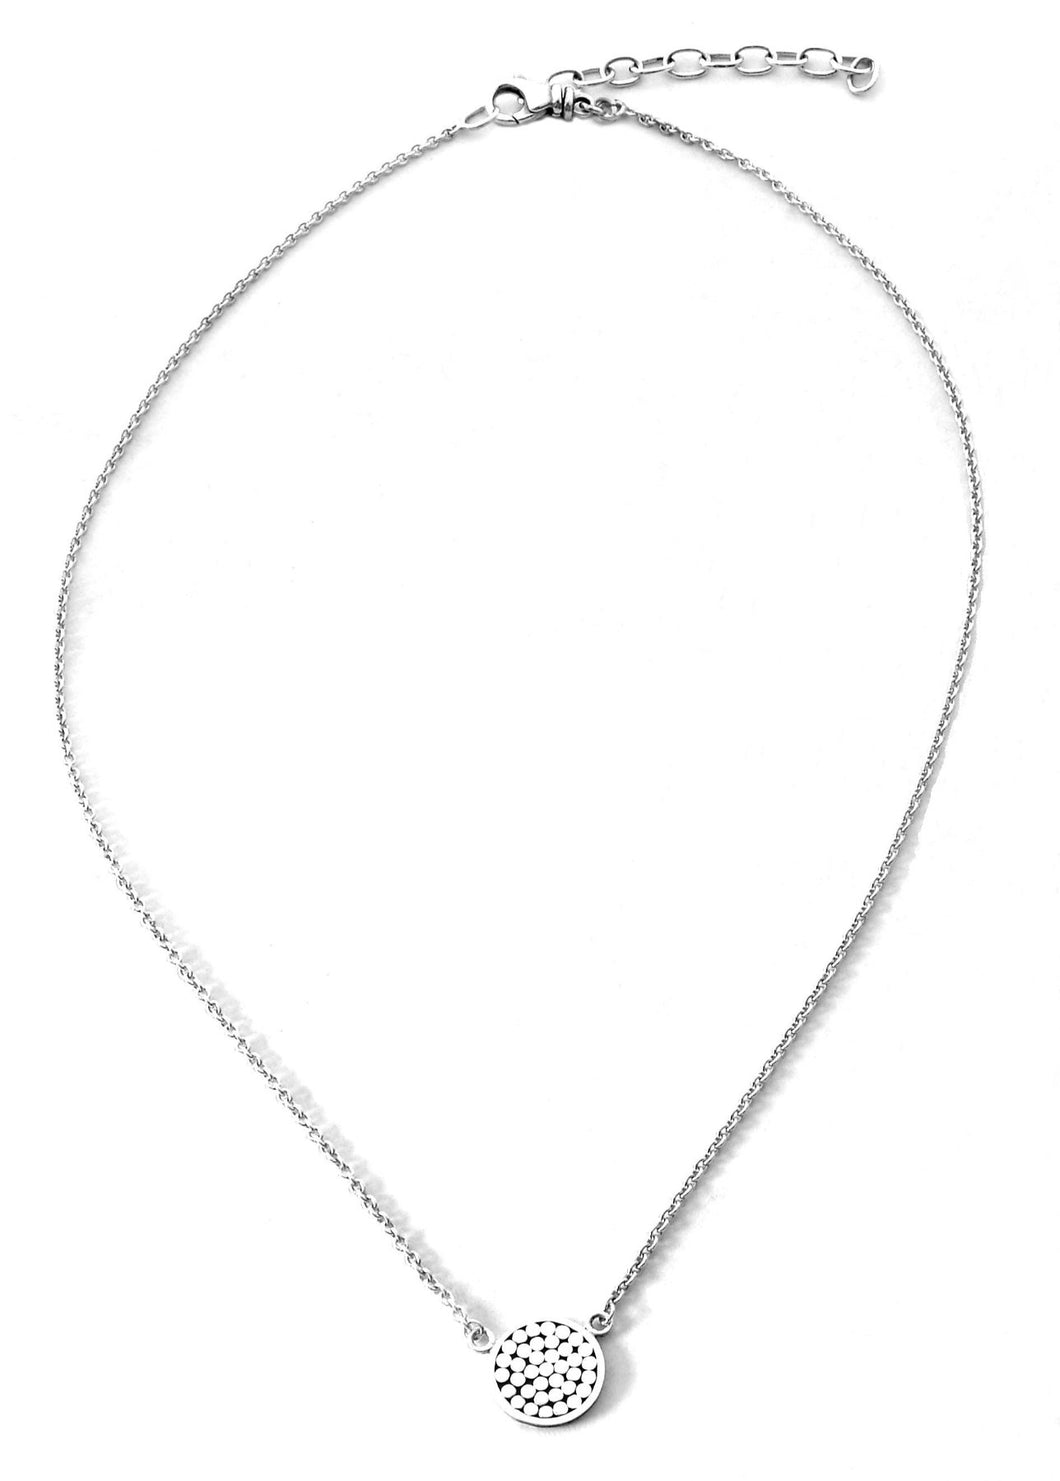 Kala 925 Sterling Silver Single Station Necklace 16-18